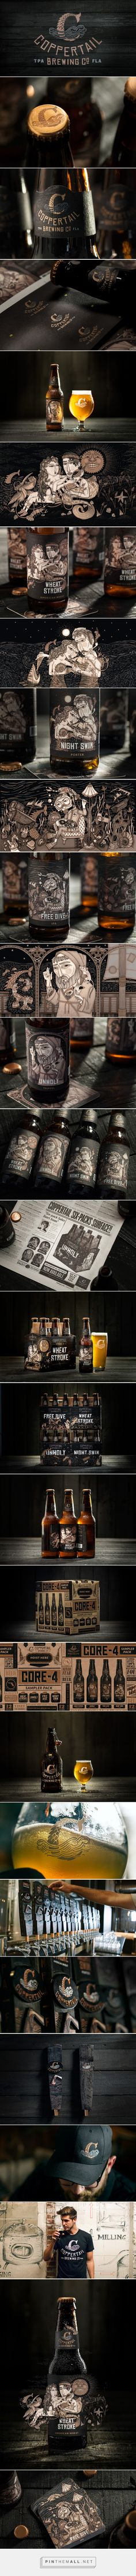 Coppertail Brewing Co. #packaging designed by sparkbrand​ - http://www.packagingoftheworld.com/2015/04/coppertail-brewing-co.html